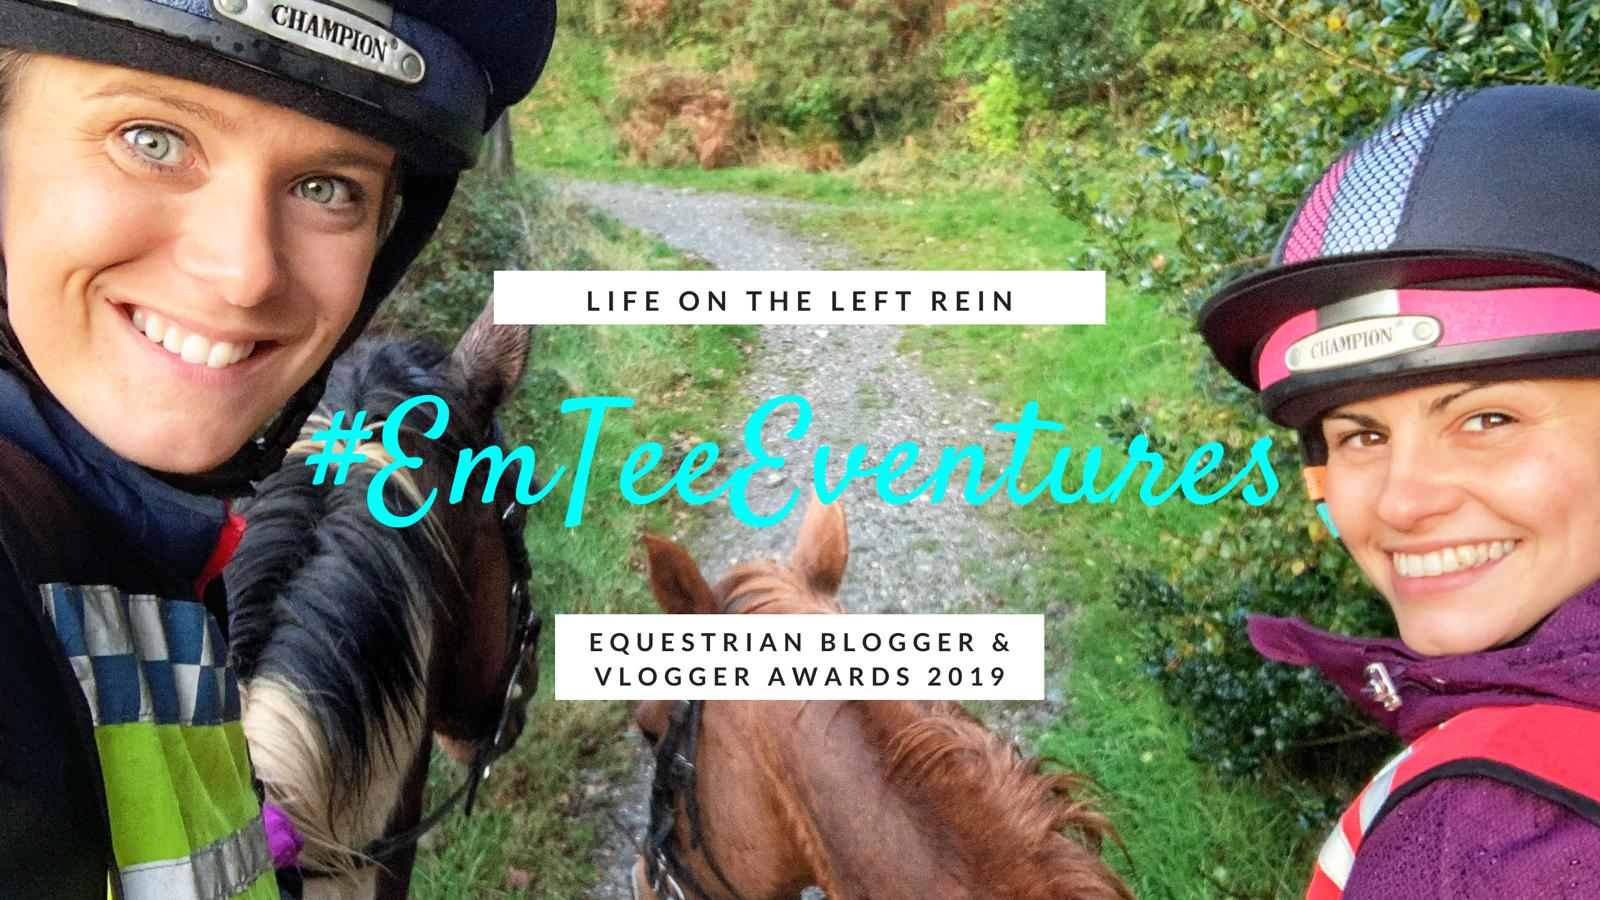 Equestrian Blogger & Vlogger Awards 2019